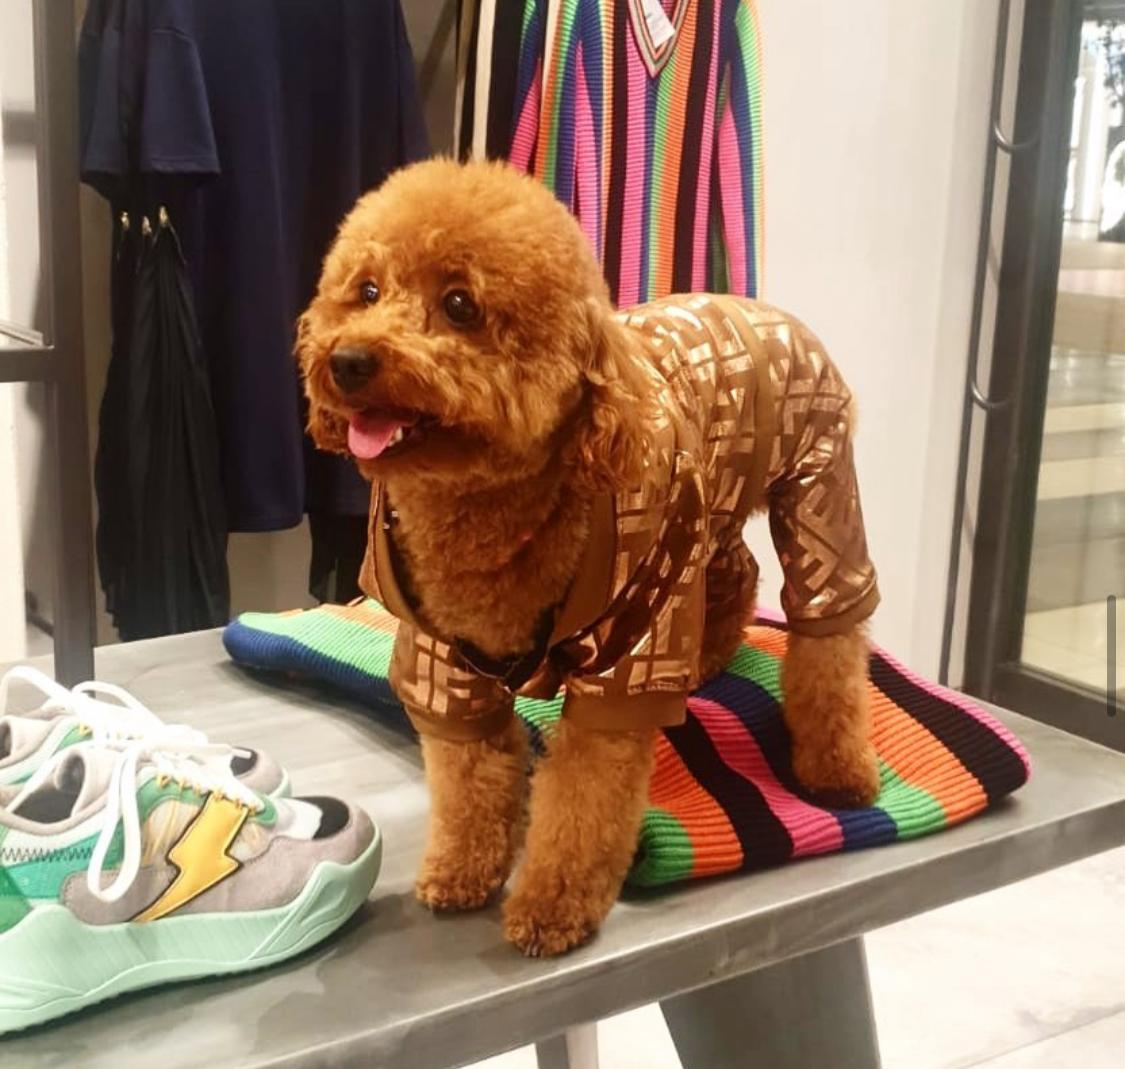 Cutest pajama ever seen😍😍 Lets take a look at +20 More clothes👇 Follow us https://t.co/8sCAVBIEcK #dogsoftwitter #doglove #doglovers #dogs #catlovers #petsupplies #petsofinstagram #thedoggiebag #petboutique #halloweendog #dogapparel #dogclothes #dogtoys https://t.co/ZukcZxNcfF